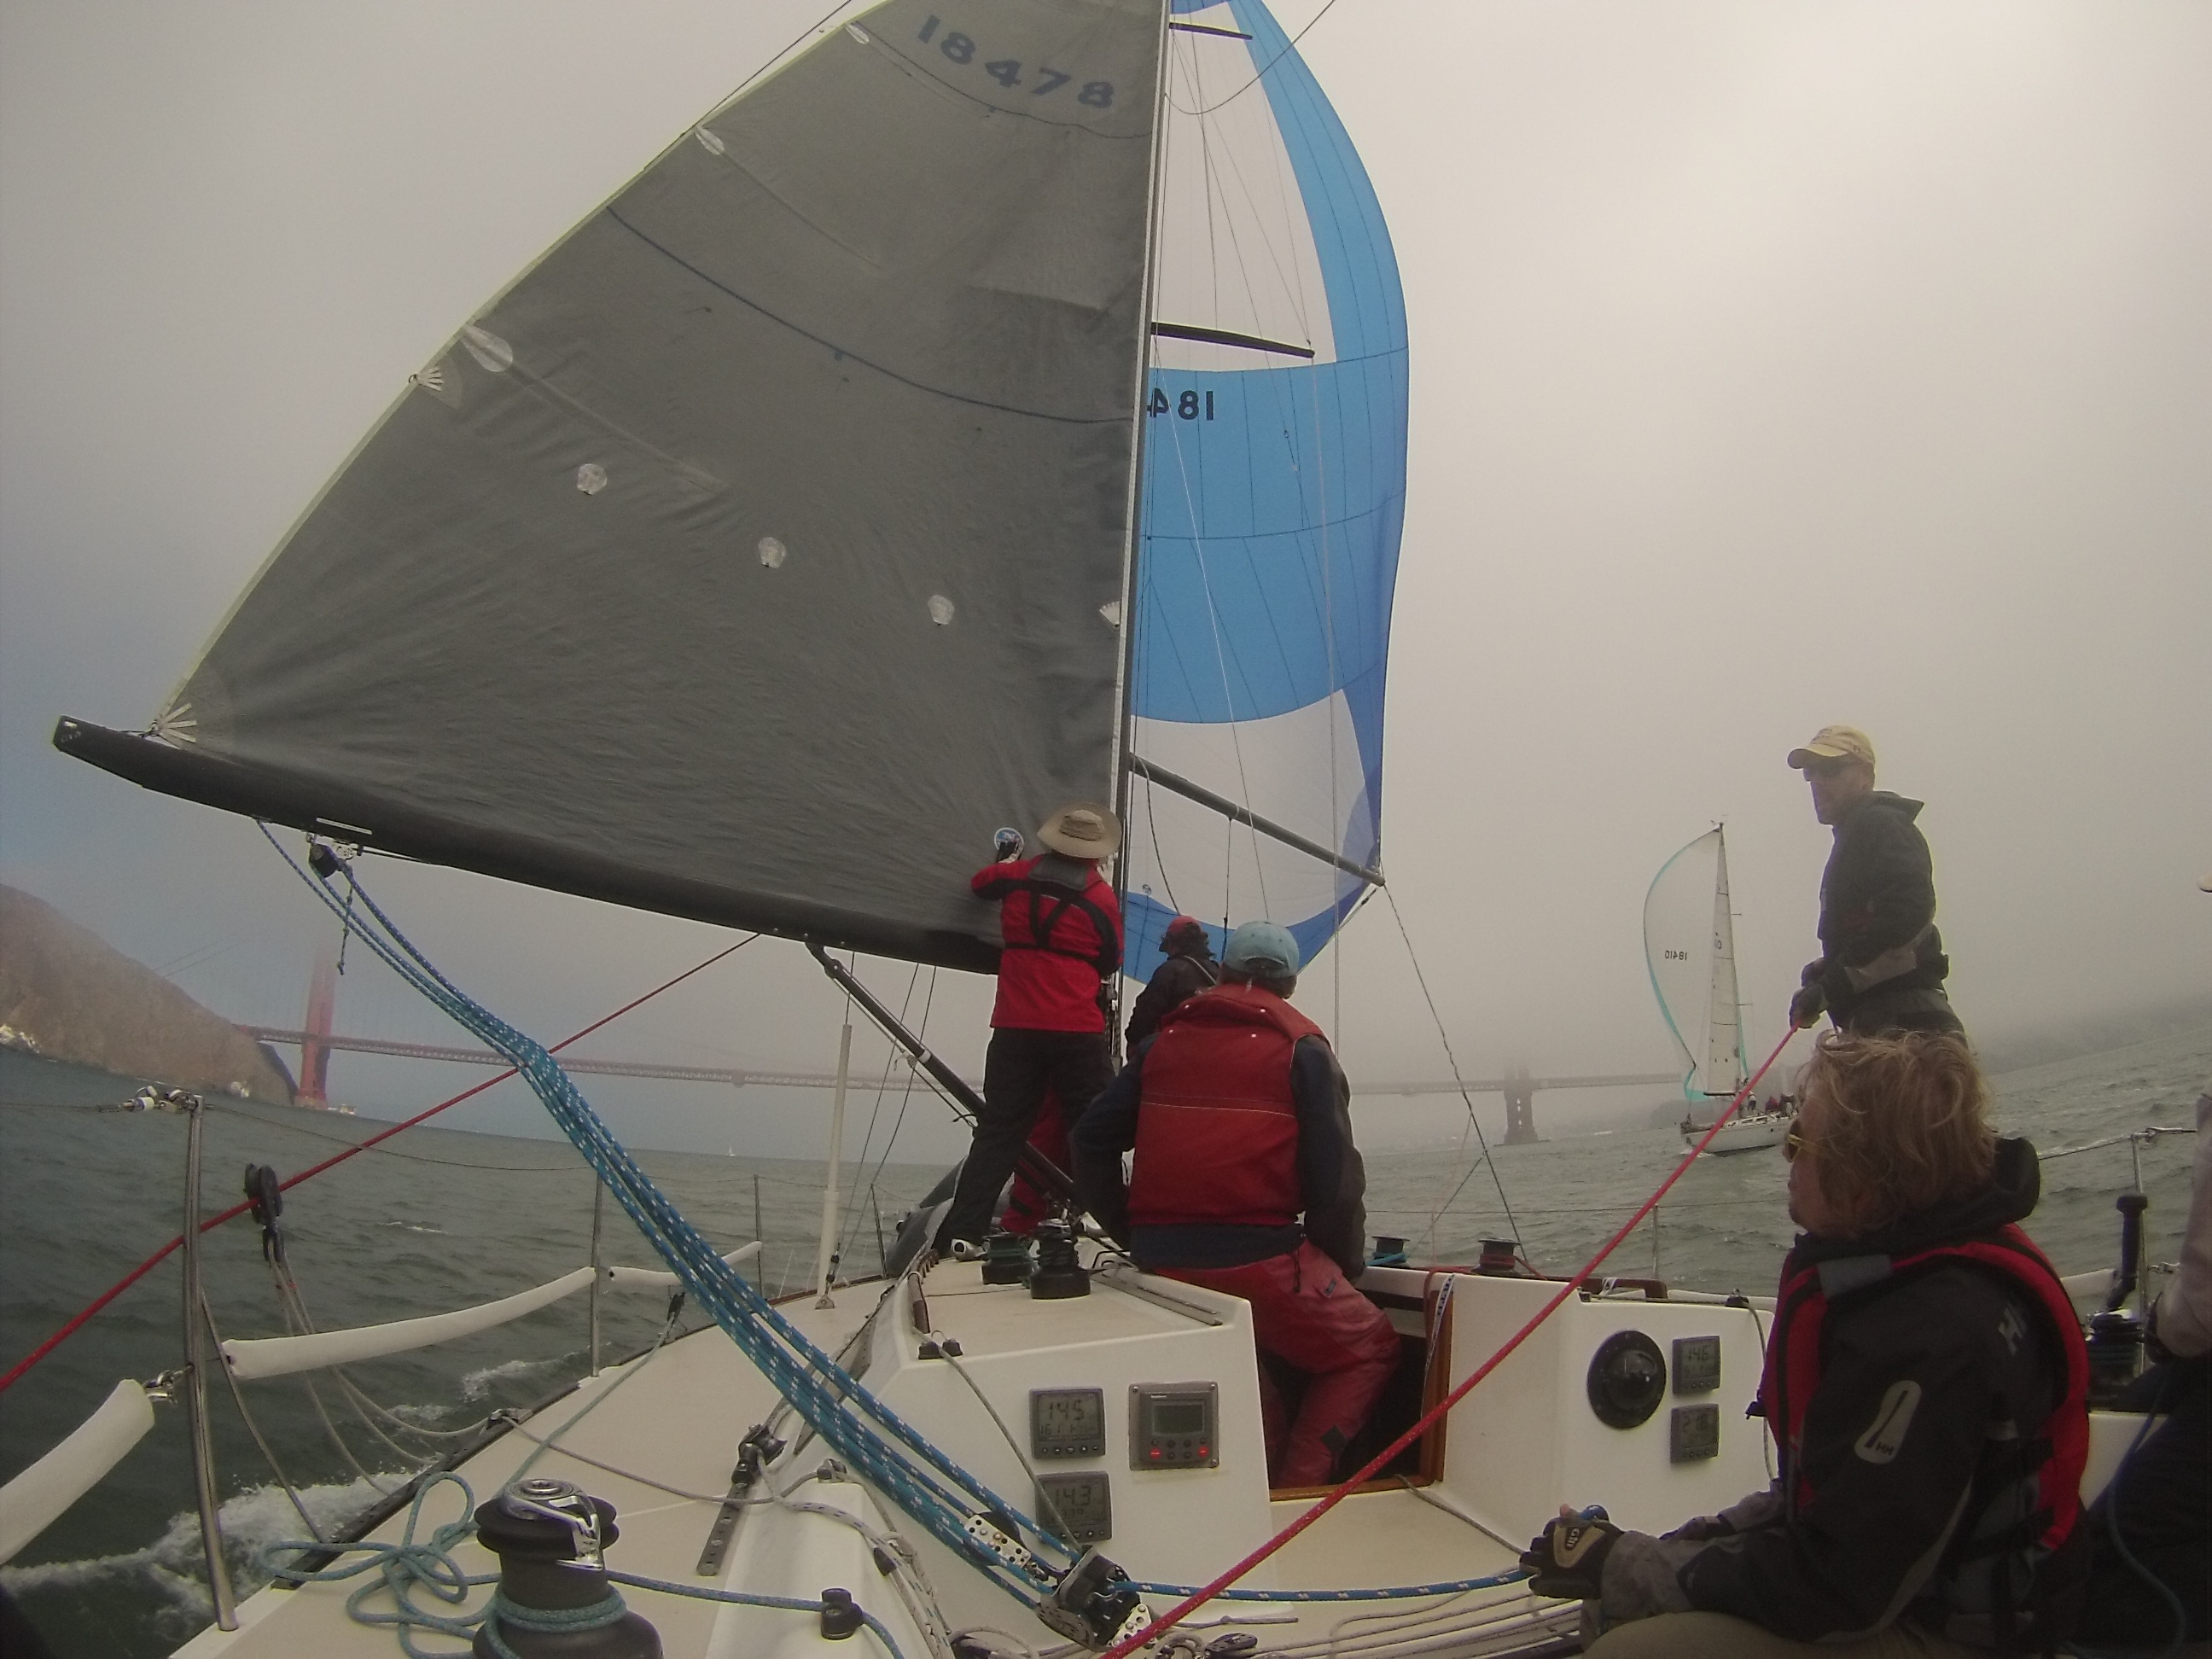 Racing in Big Wind and Fog